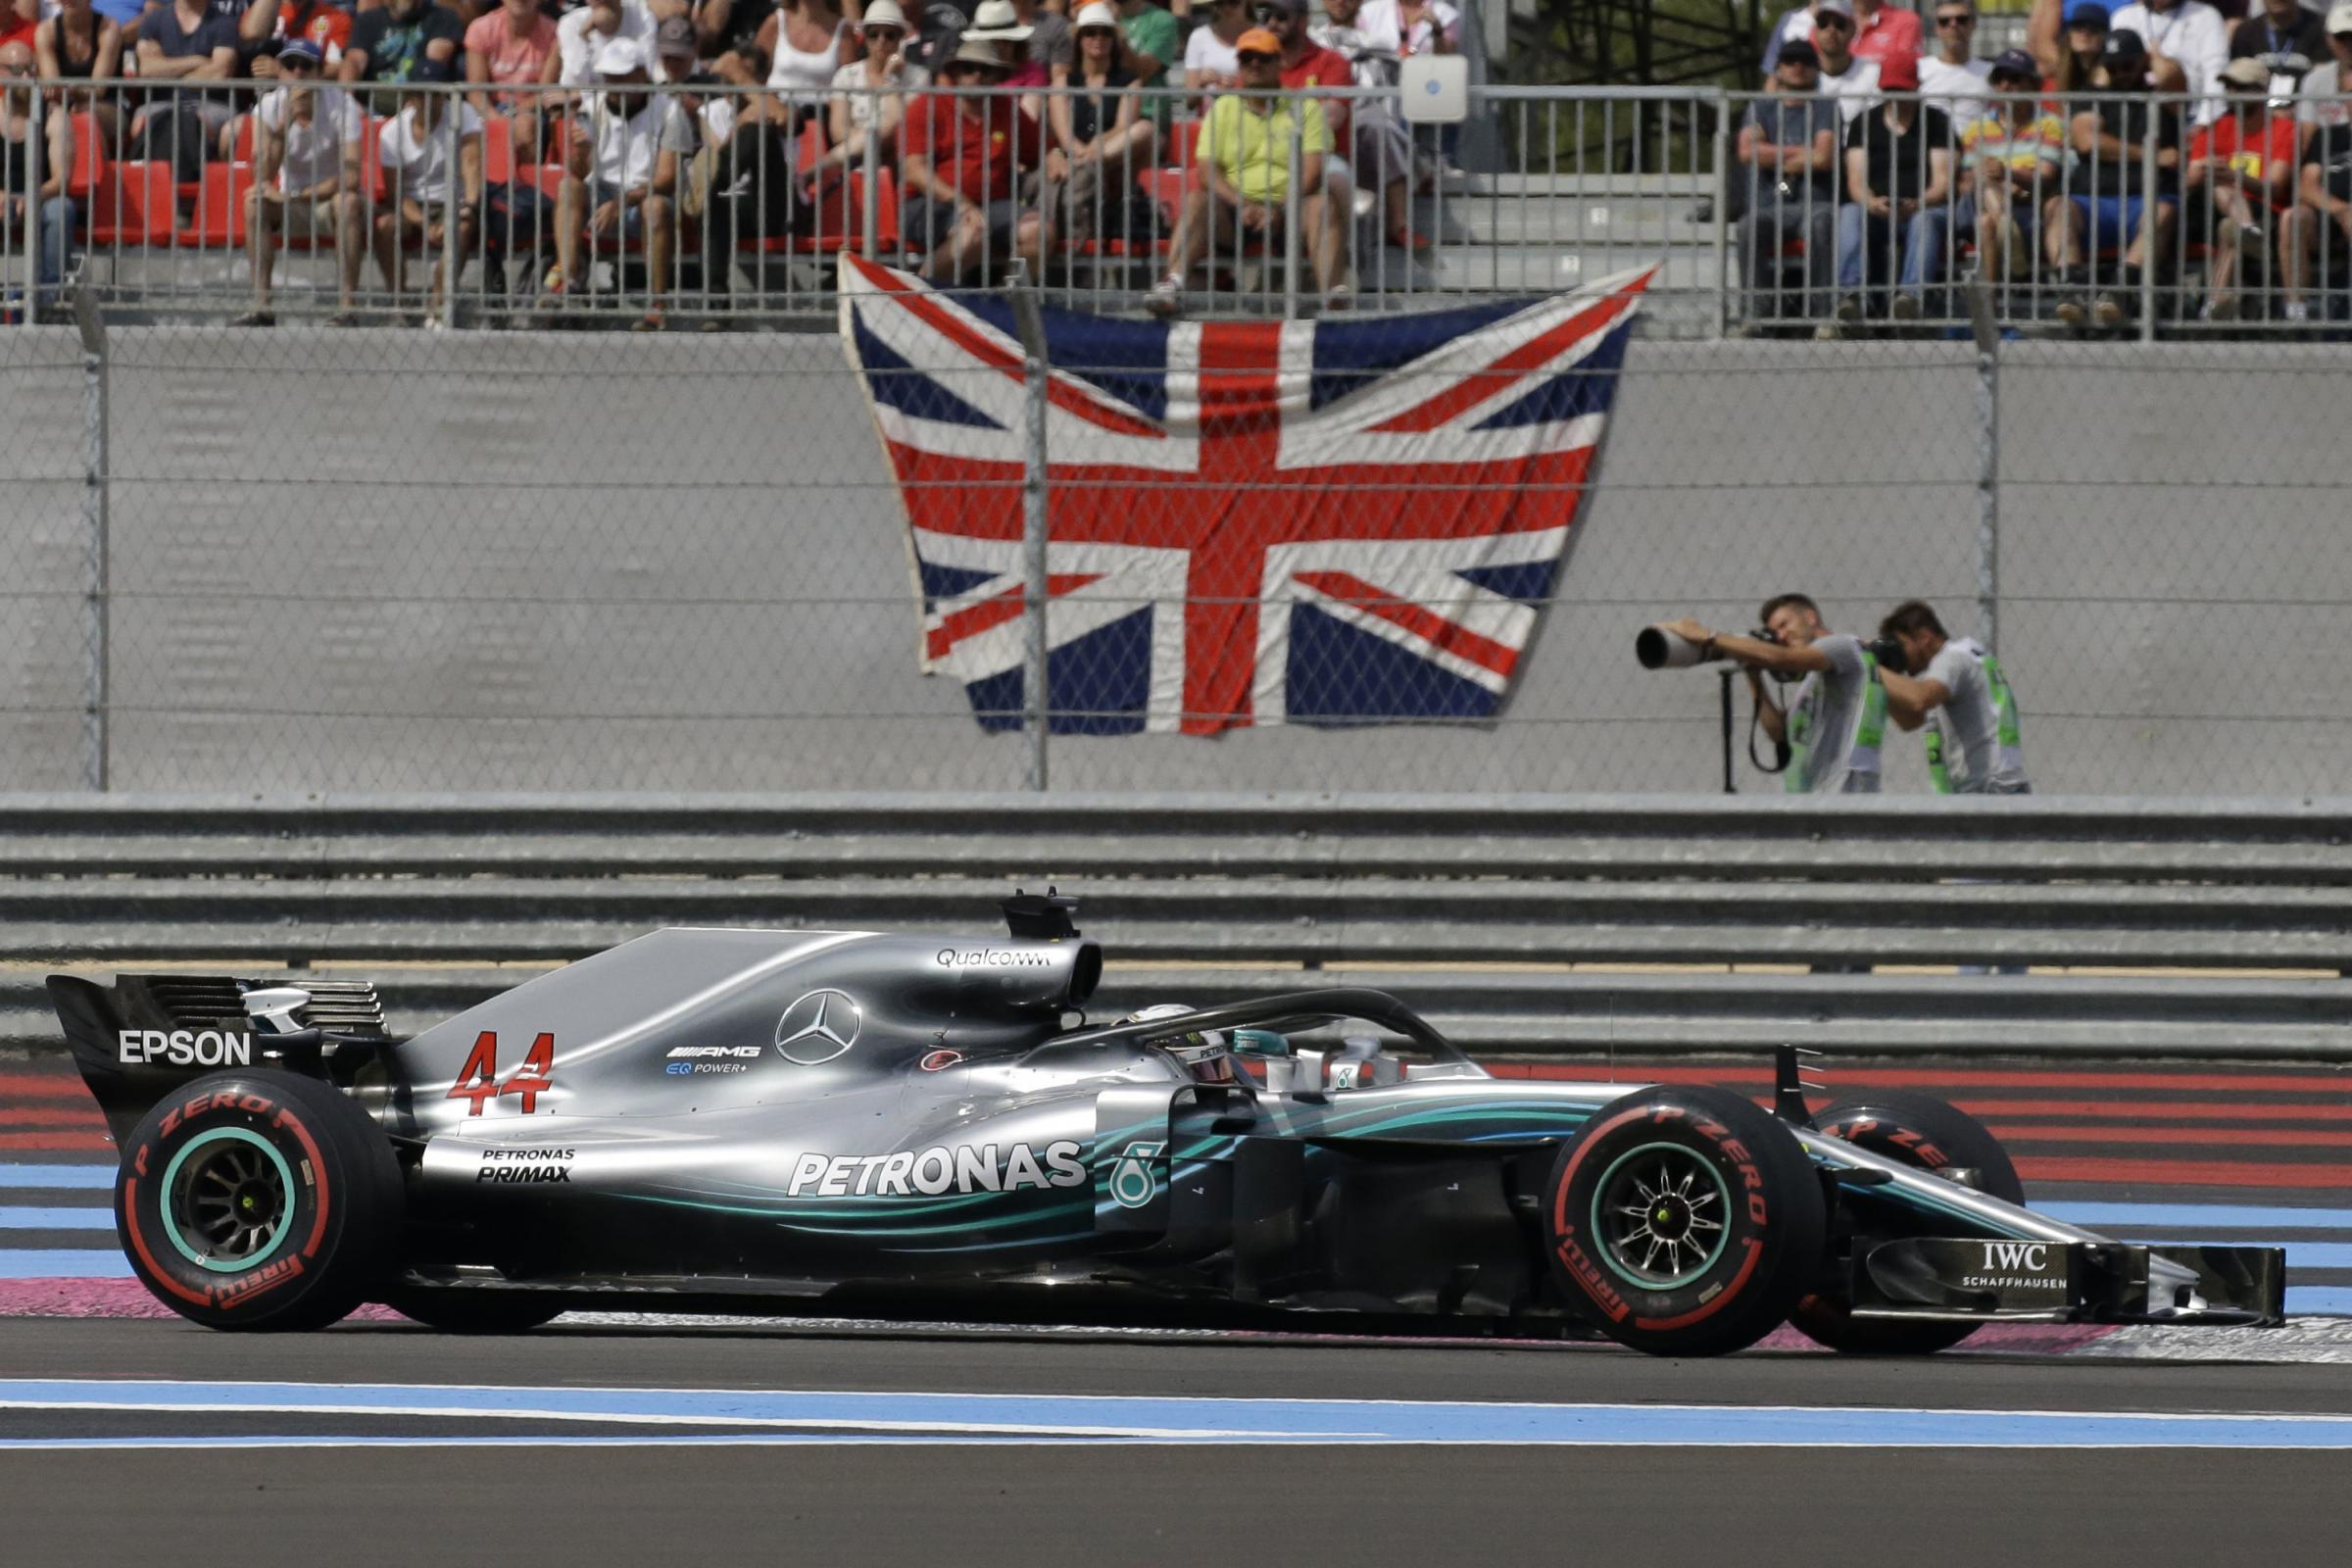 Mercedes driver Lewis Hamilton of Britain races during the French Formula One Grand Prix at the Paul Ricard racetrack, in Le Castellet, southern France, Sunday, June 24, 2018. (AP Photo/Claude Paris).